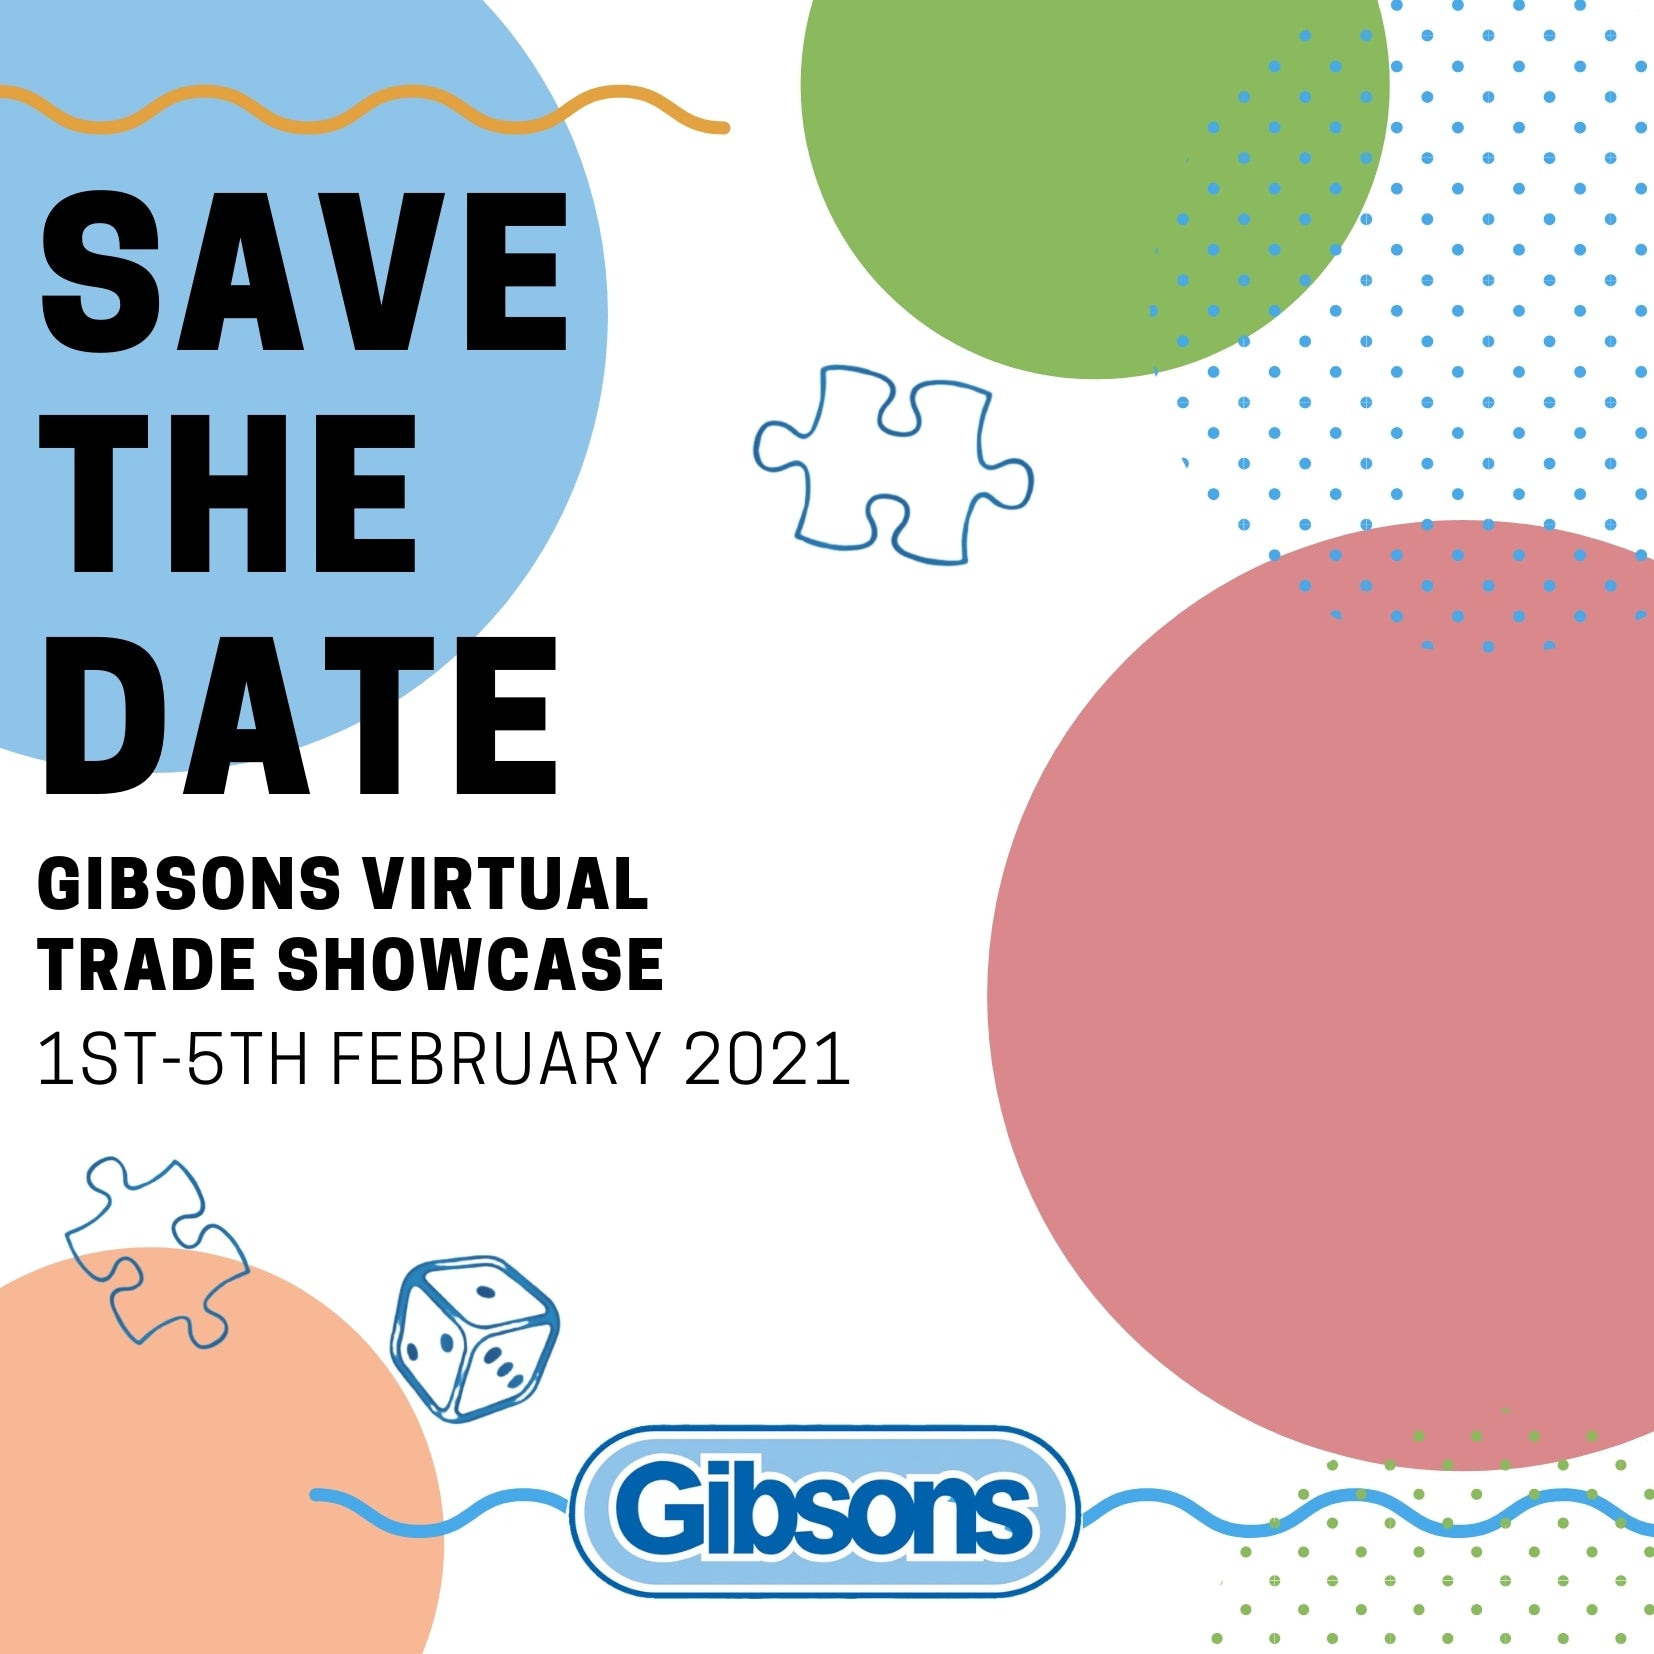 Booking for the Gibsons Virtual Trade Showcase is now open.